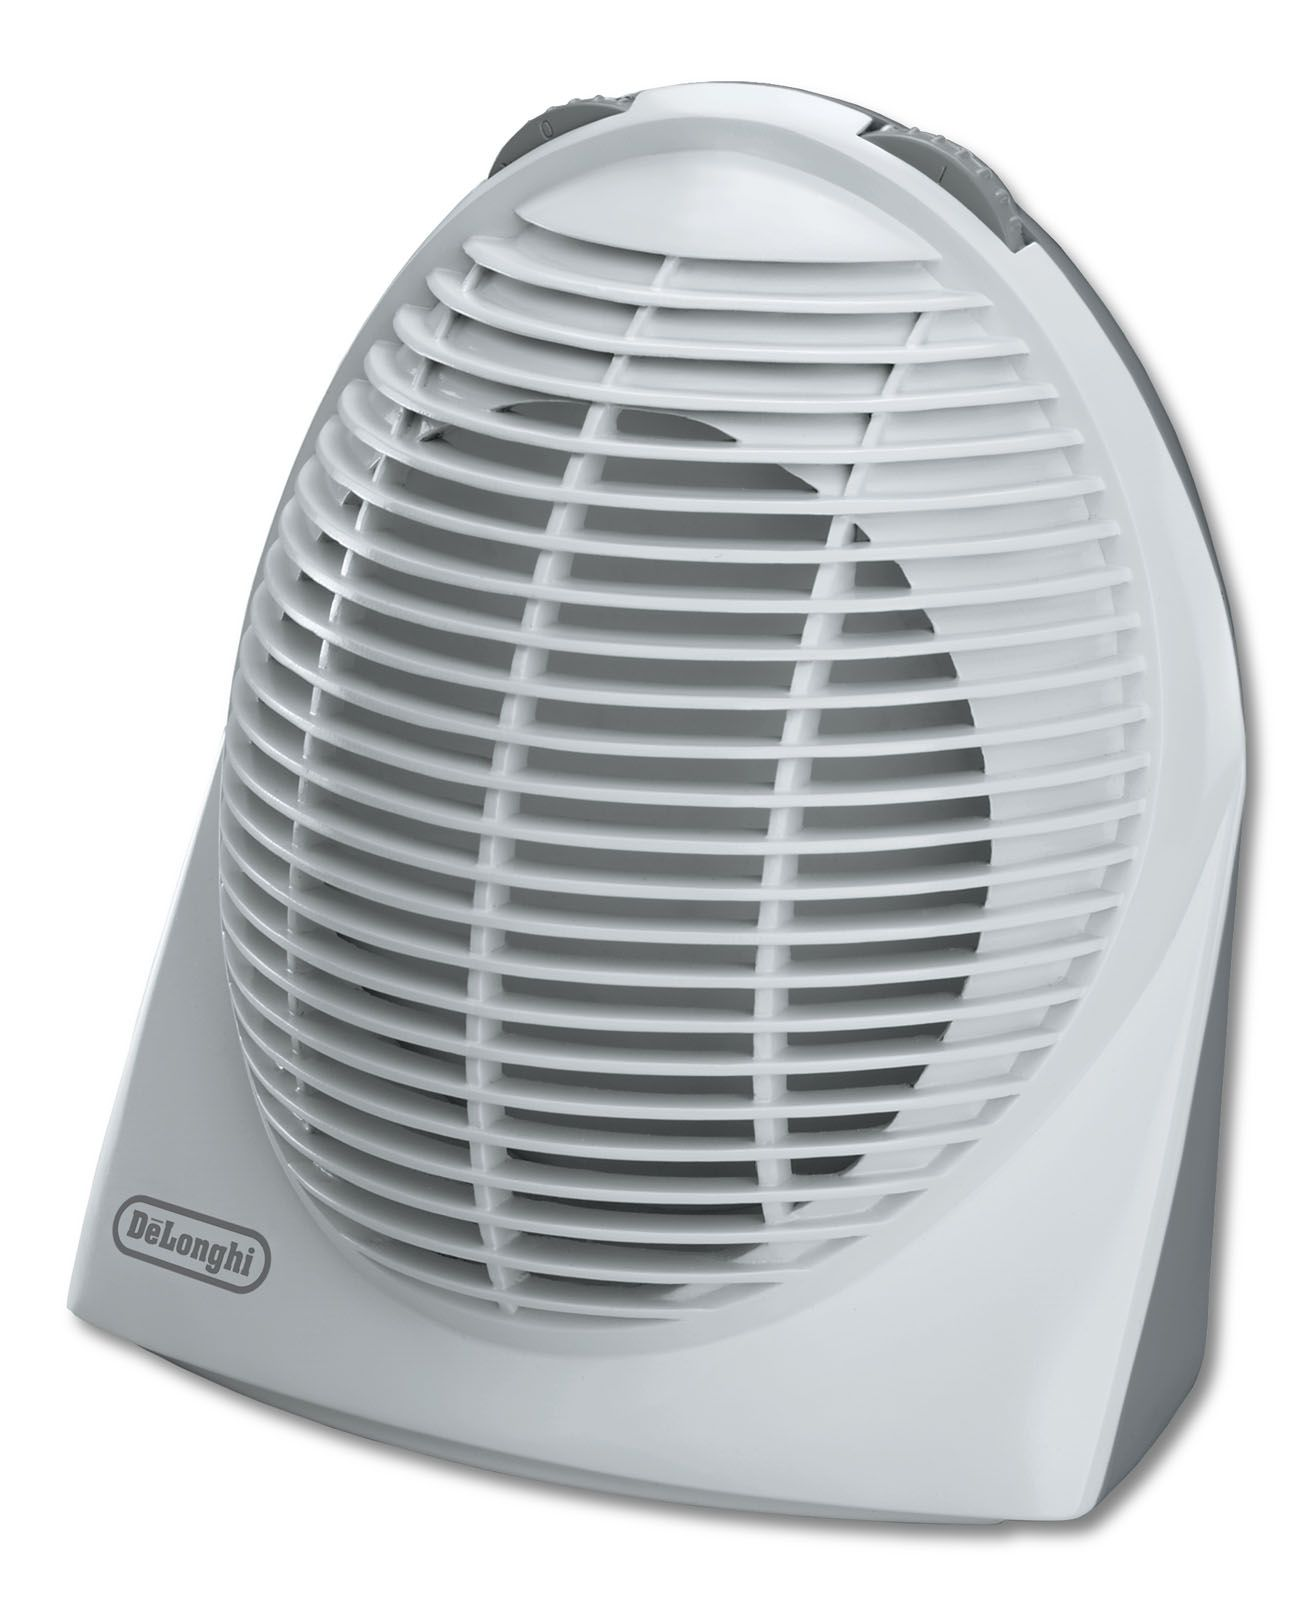 HVE134 fan heater